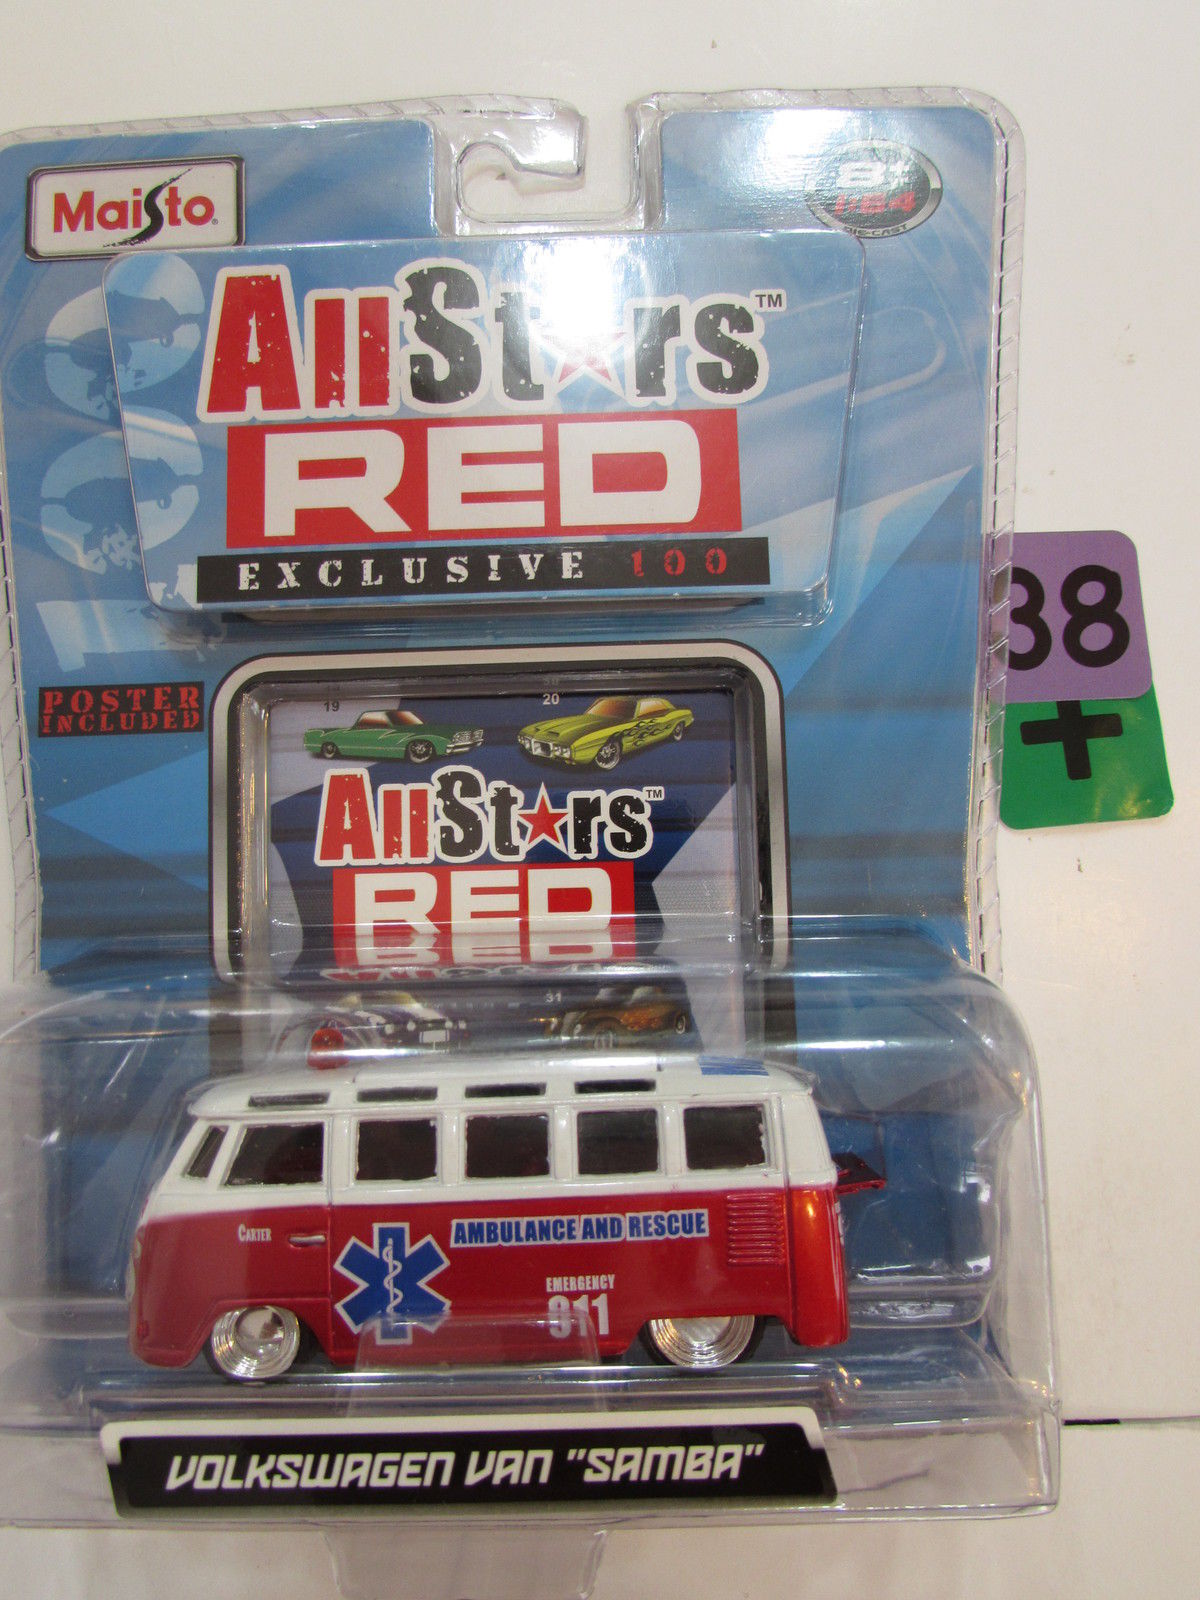 MAISTO ALL STARS RED EXCLUSIVE 100 VOLKSWAGEN VAN SAMBA - AMBULANCE AND RESCUE